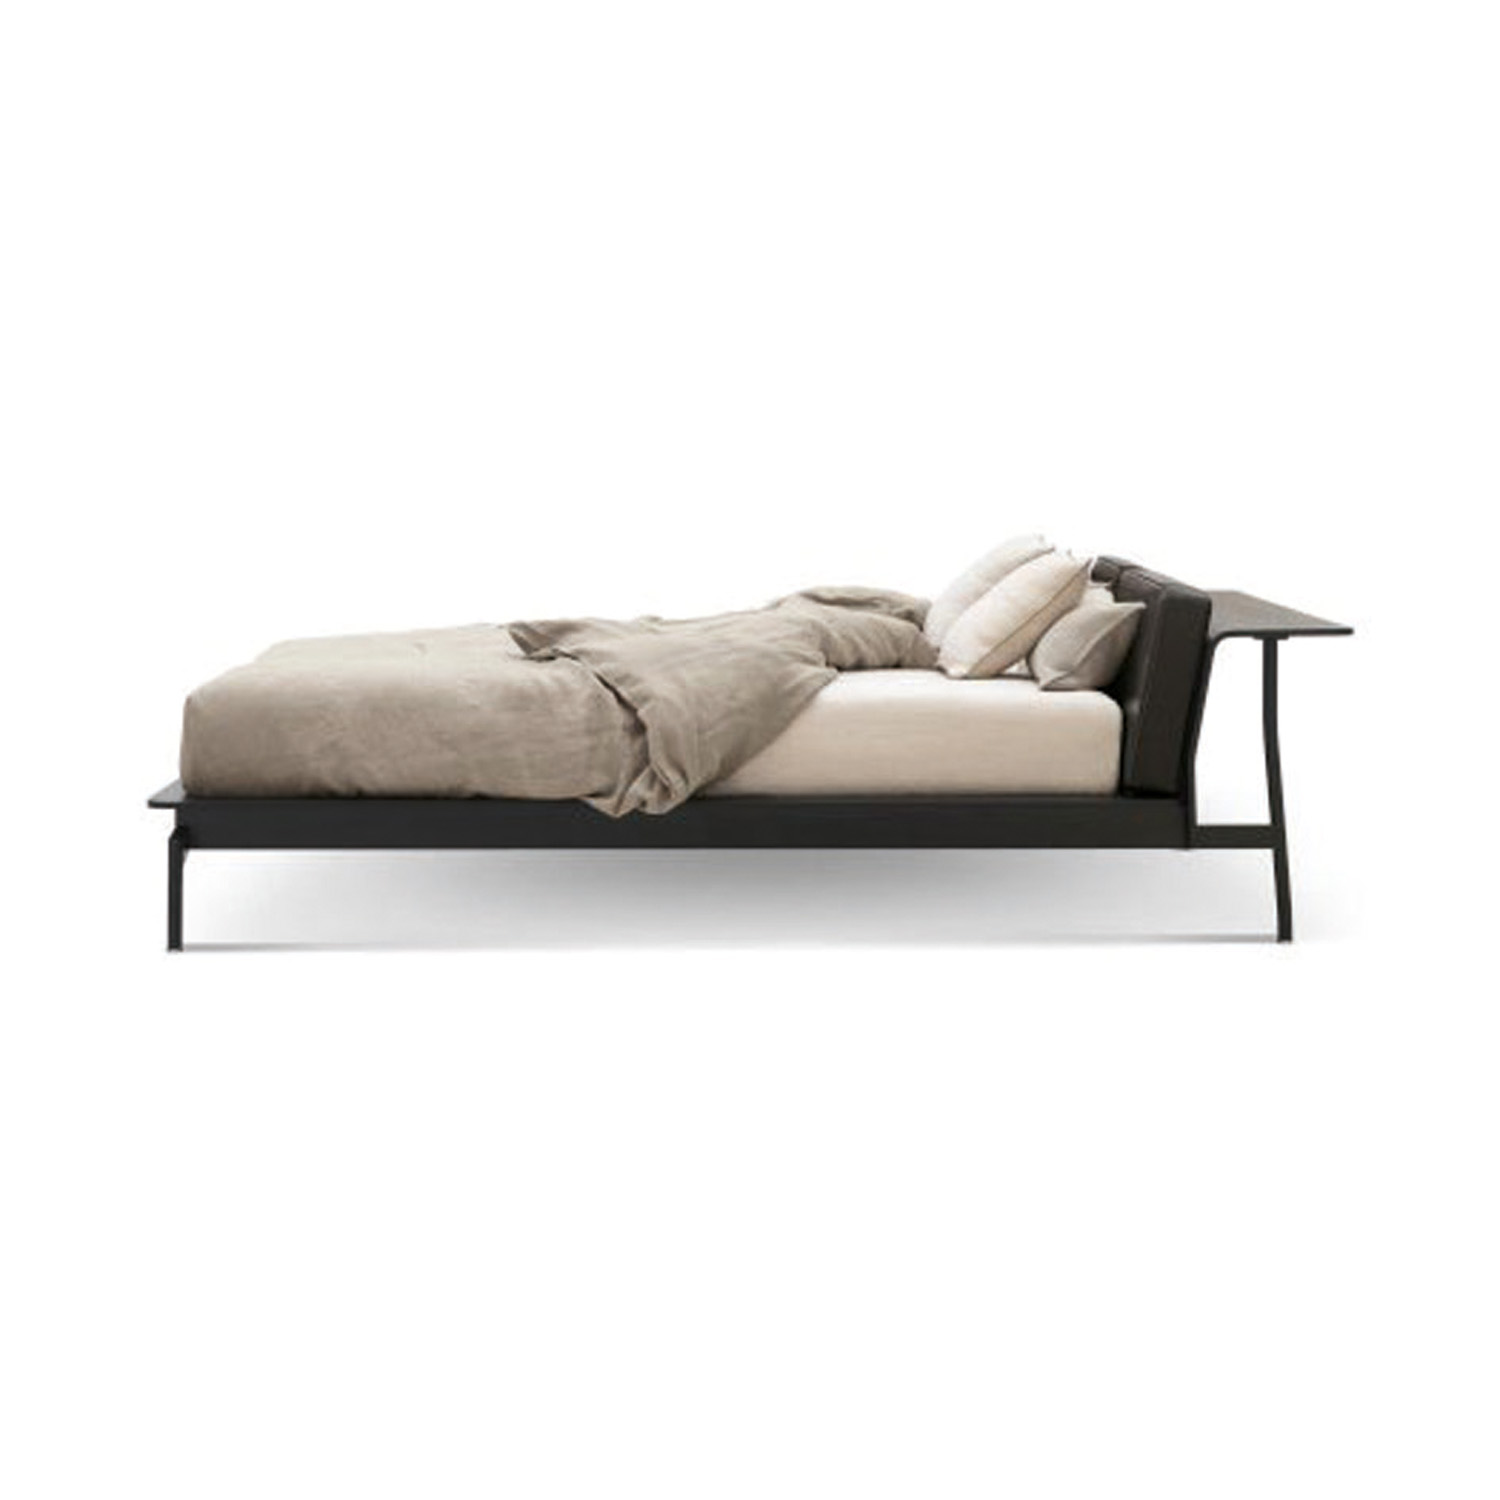 Sled bed by Rodolfo Dordoni for Cassina, from $19,485, cultdesign.com.au